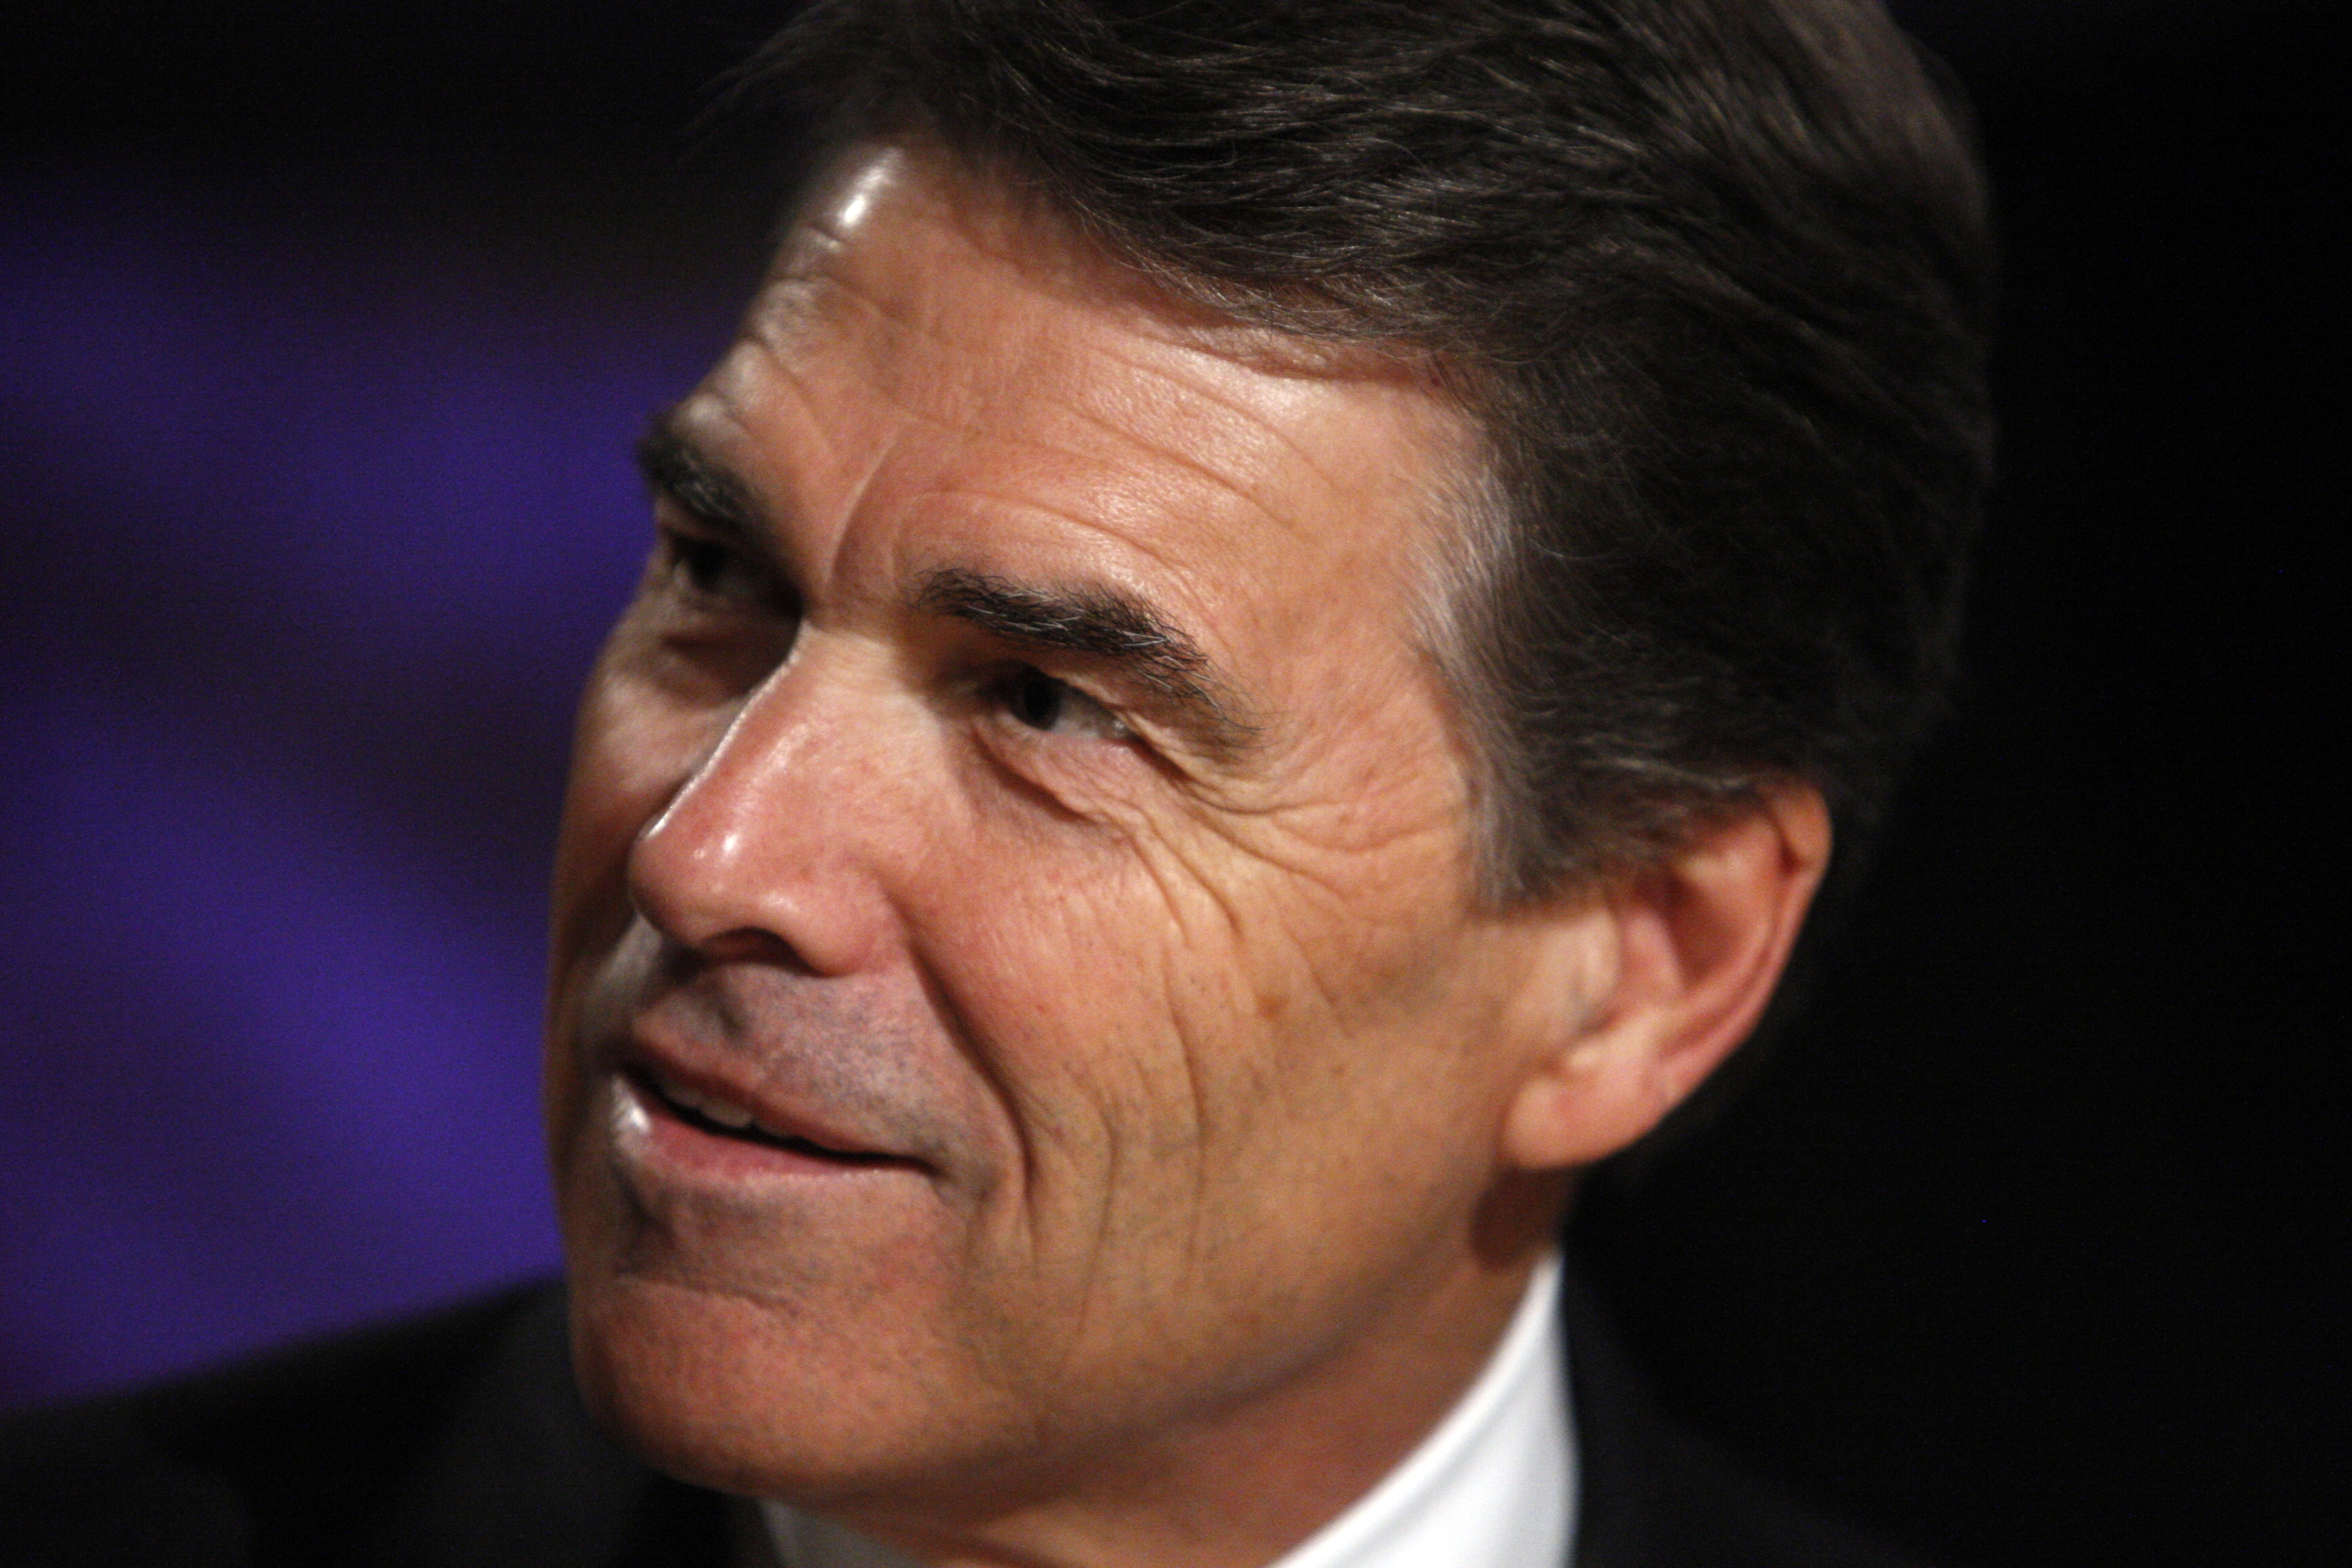 Diplomats defend themselves against Perry criticism